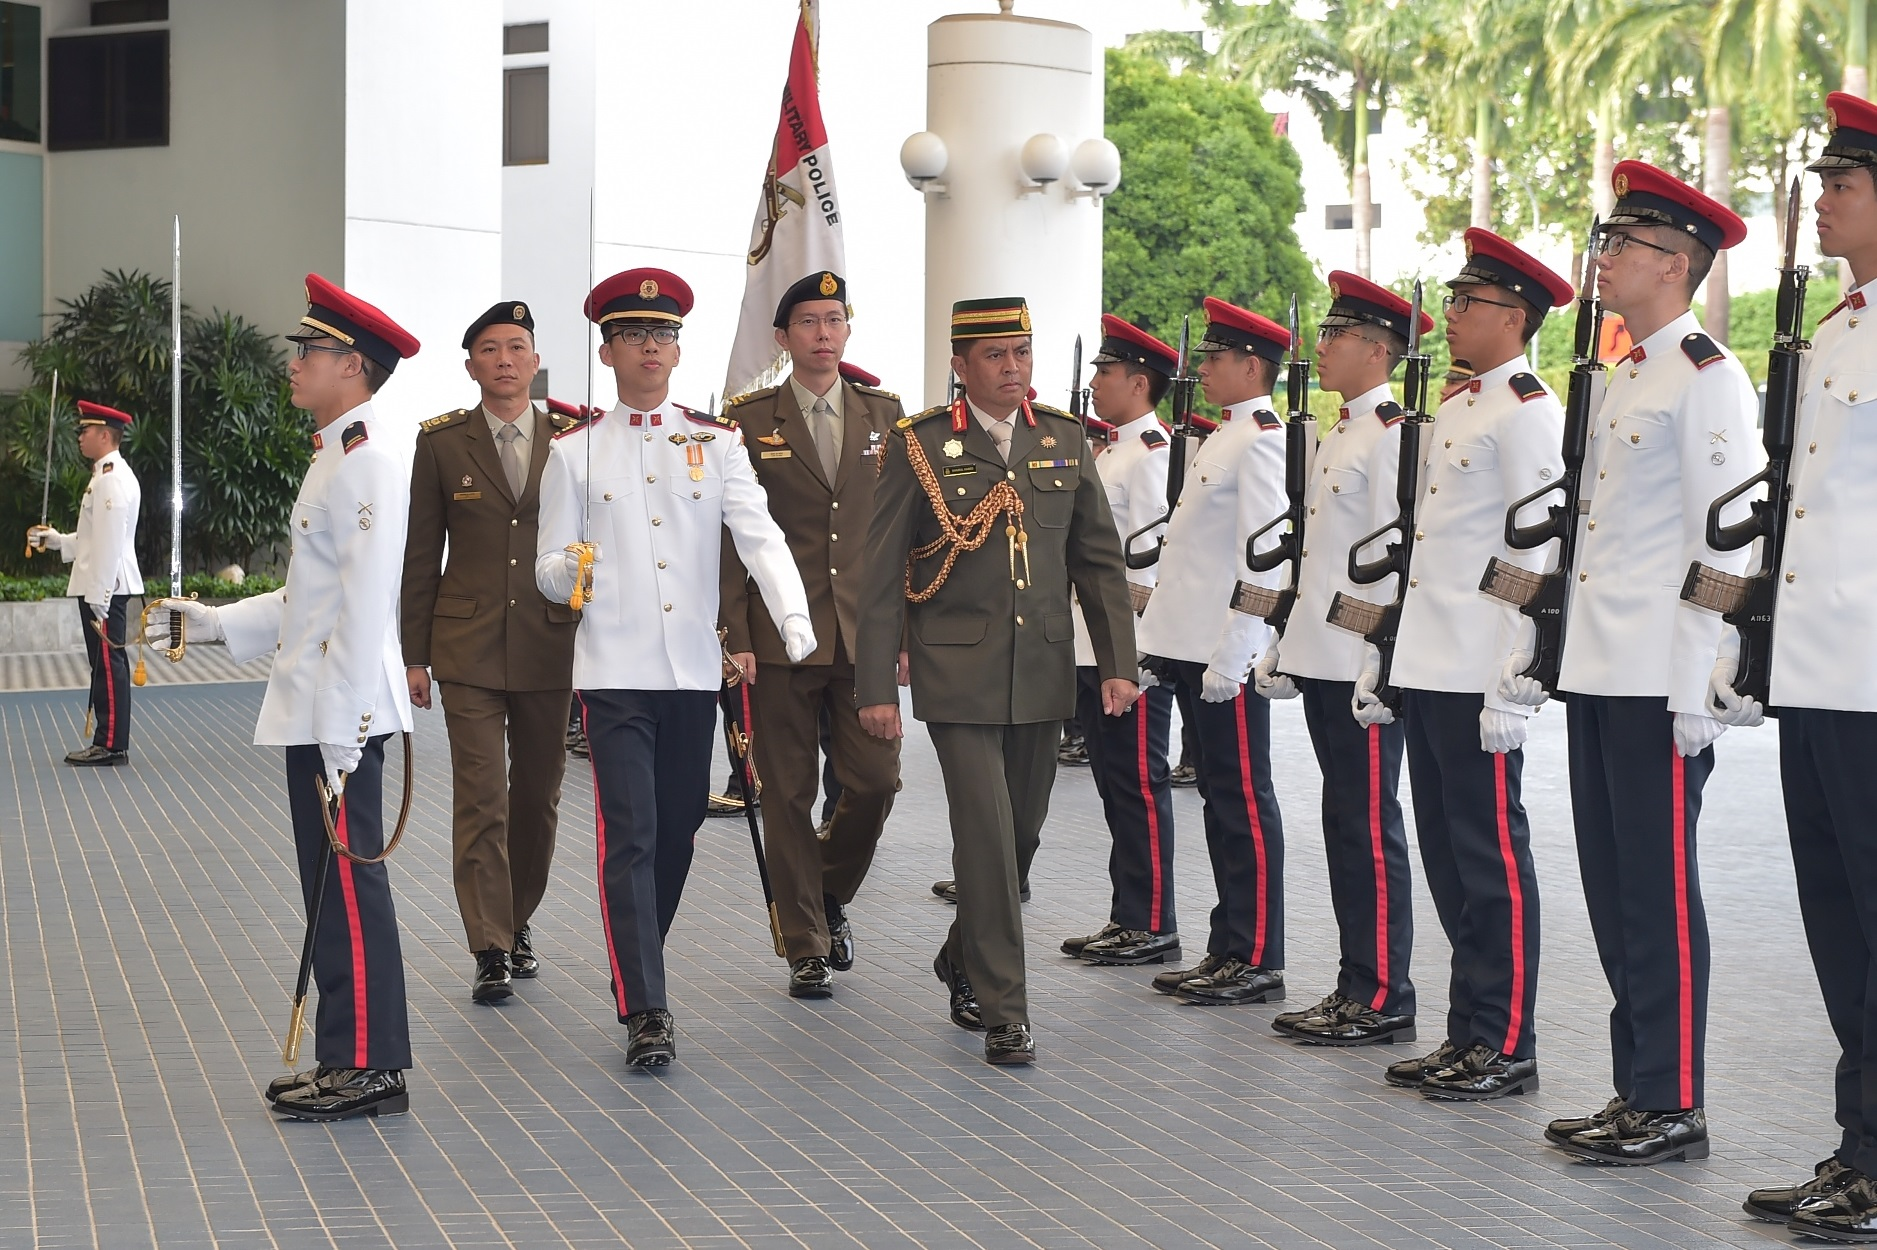 BG Khairul Hamed inspecting the Guard of Honour at the Ministry of Defence.